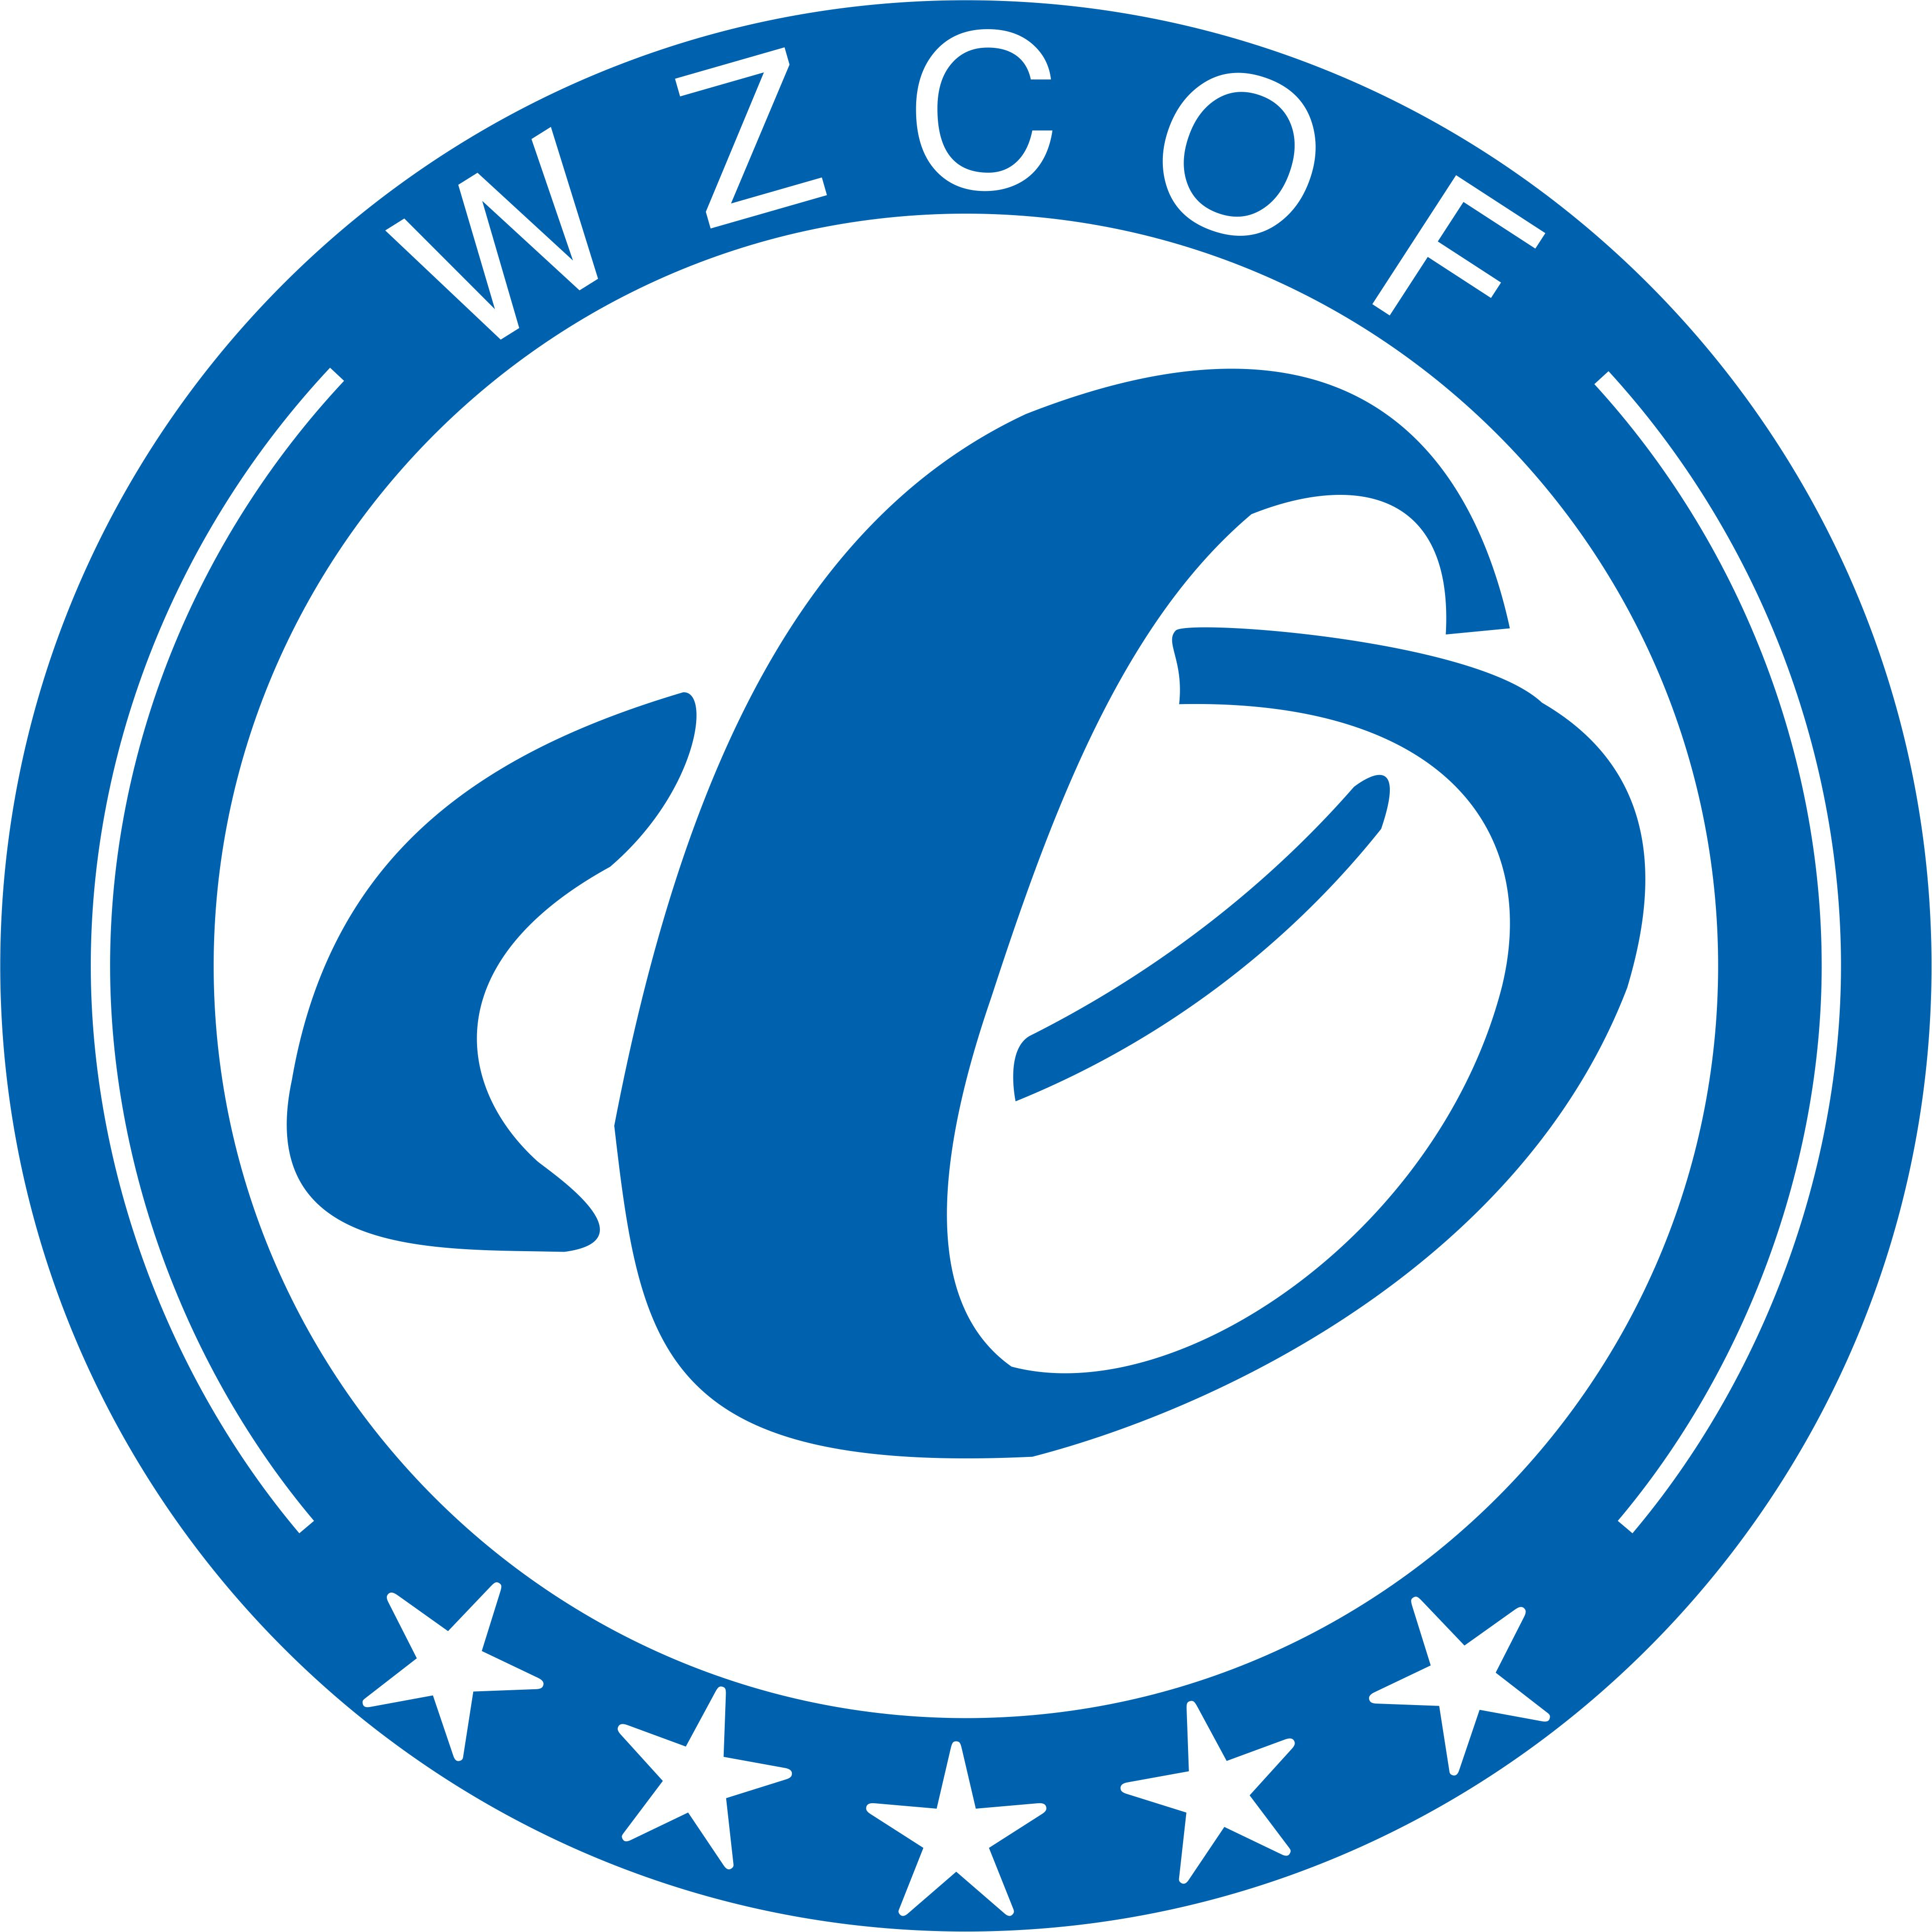 WENZHOU C.O.F. FOREIGN TRADE CO.,LTD.